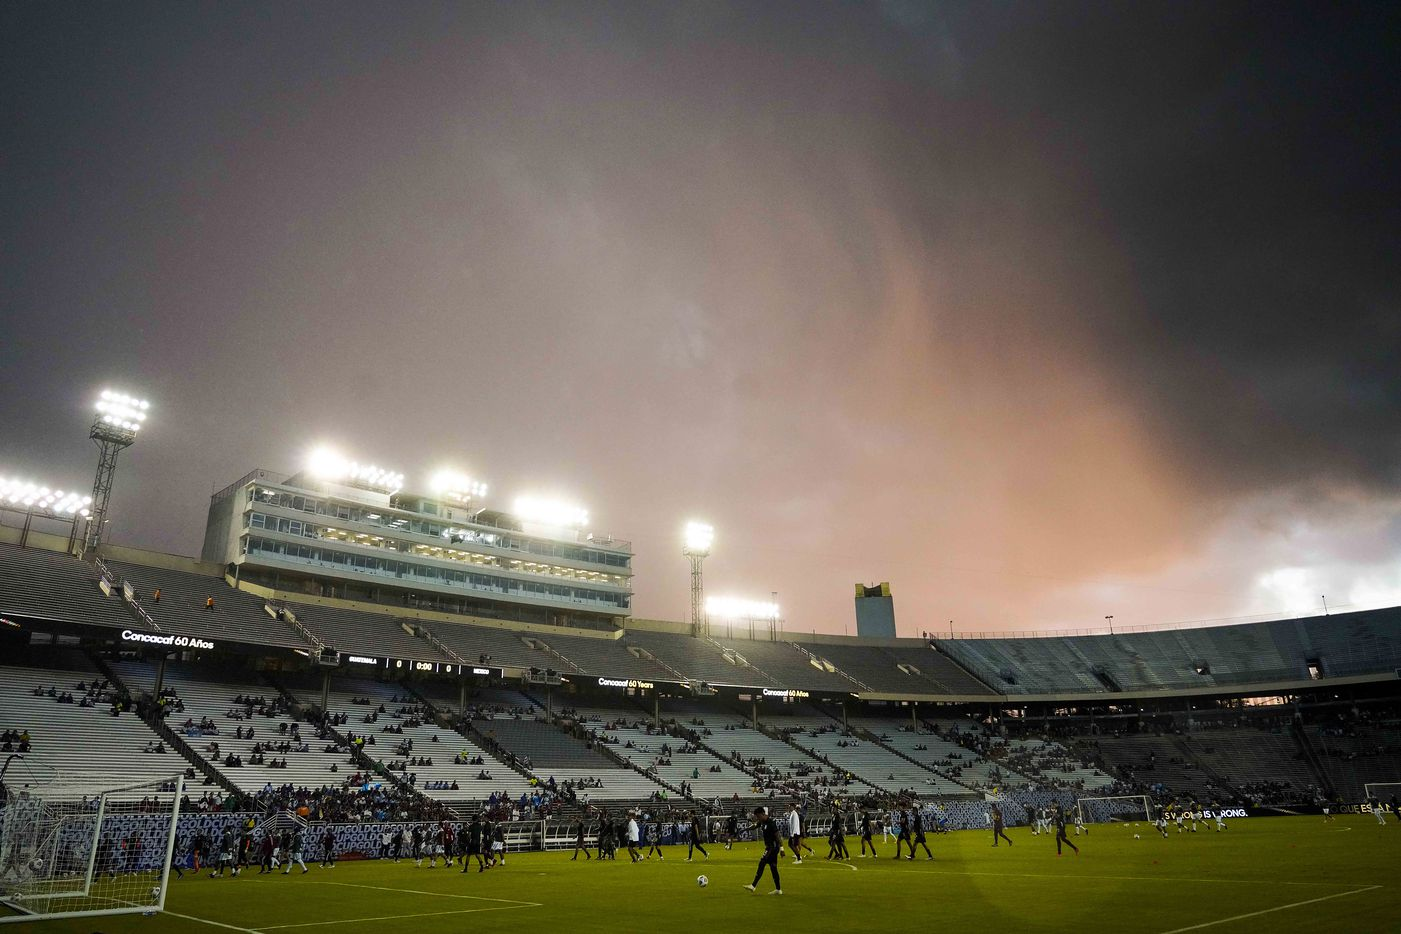 Players head for the locker room as storm clouds roll over the stadium before a CONCACAF Gold Cup Group A soccer match at the Cotton Bowl on Wednesday, July 14, 2021, in Dallas. The start of the game was delayed due to weather.